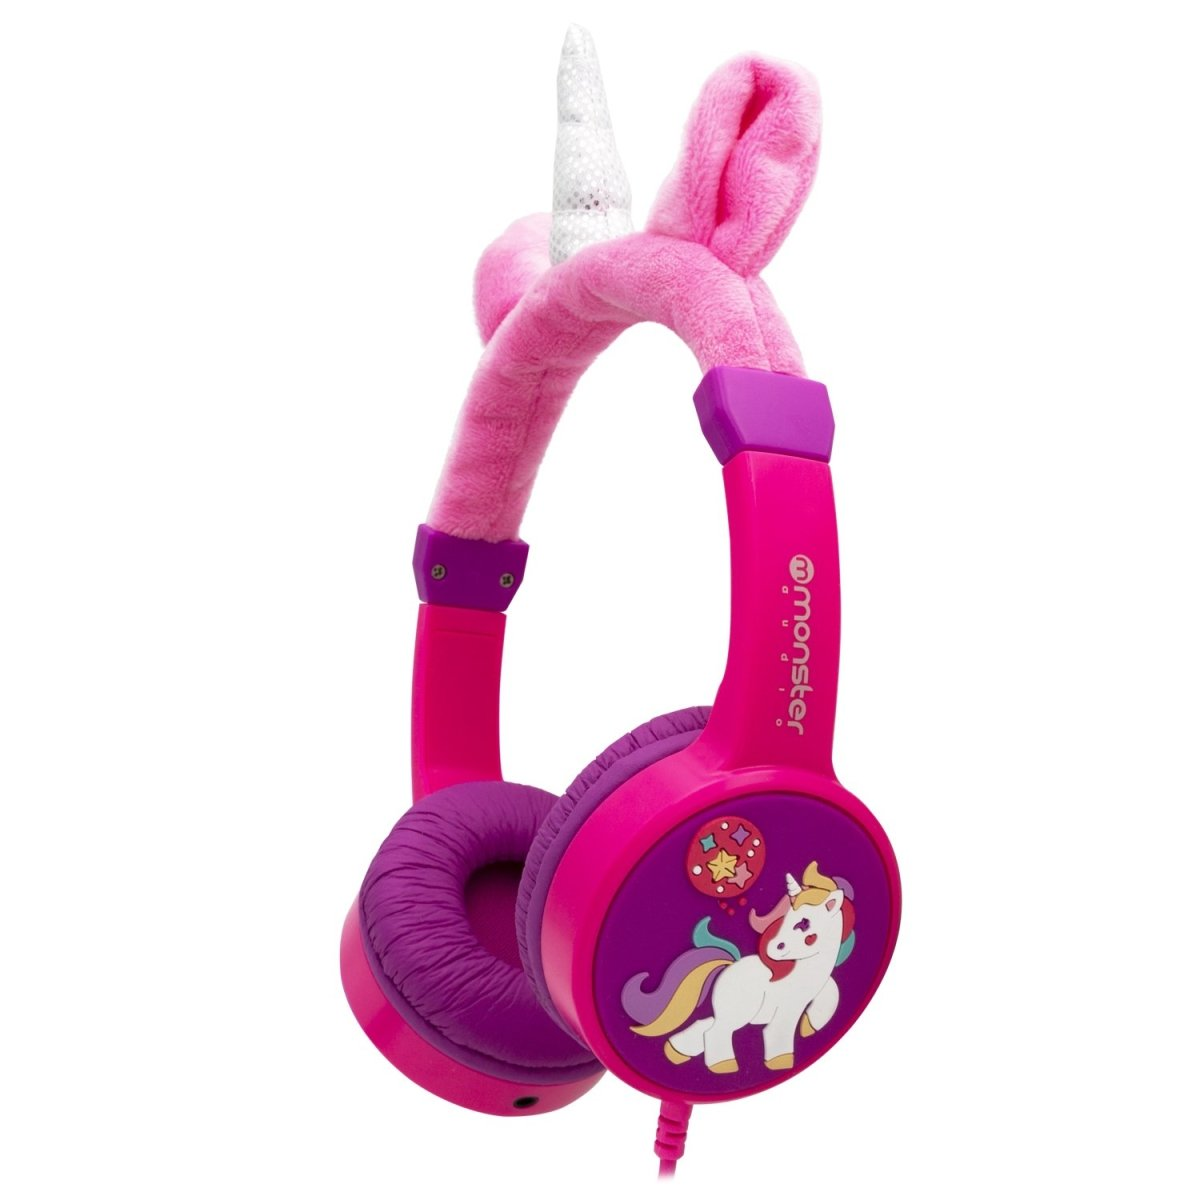 Audífonos para Niños Monster Cool Kid Unicornio